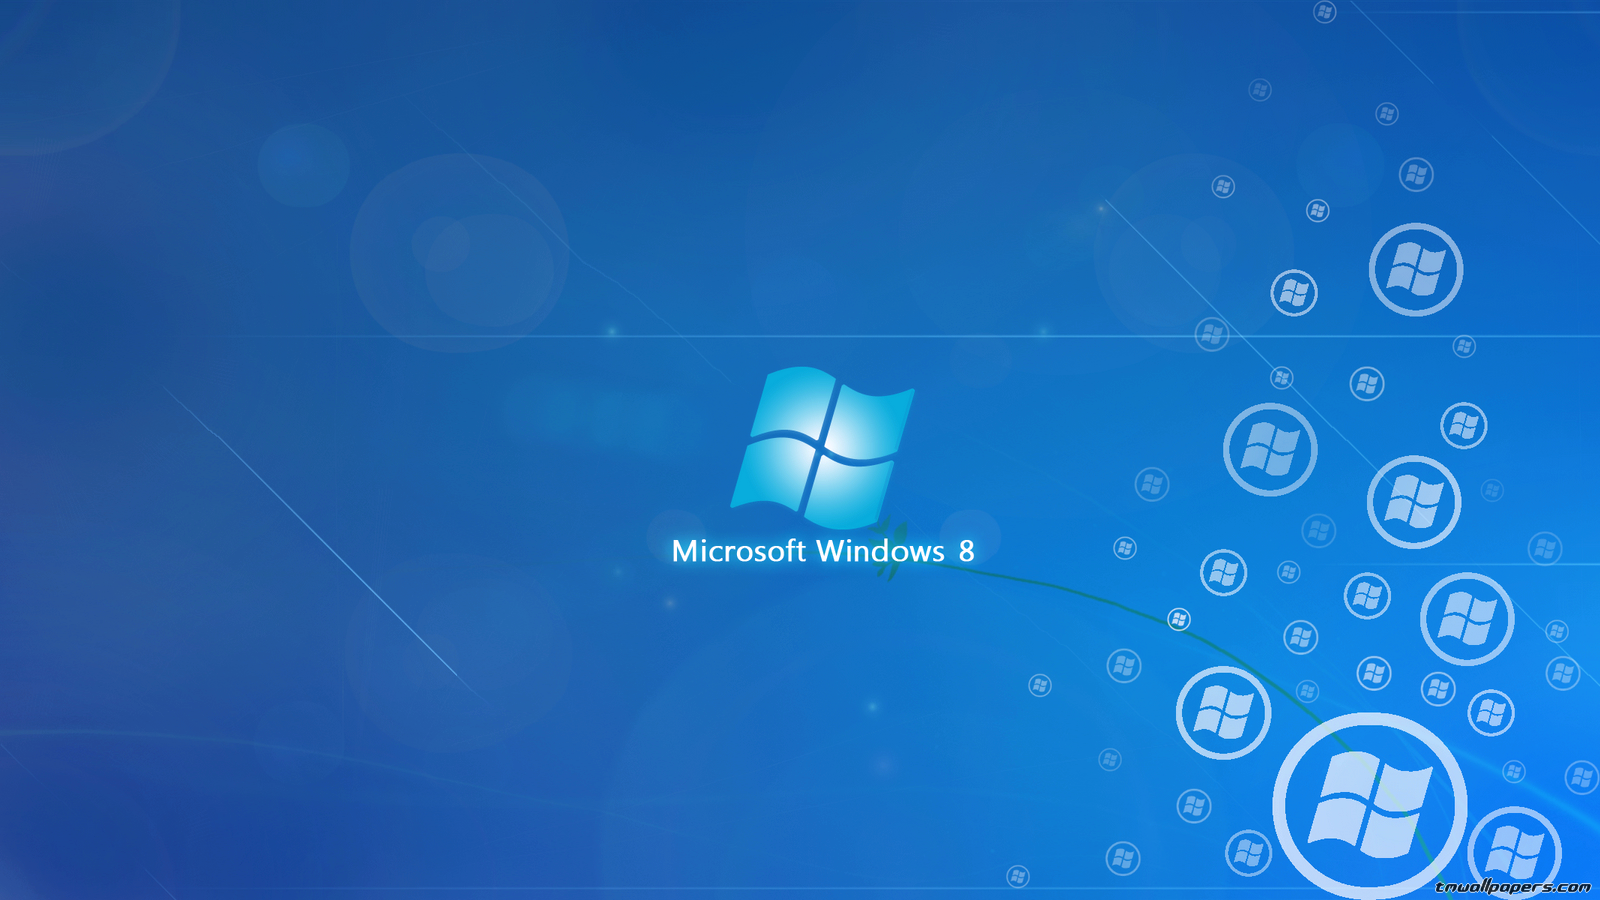 microsoft windows images windows 8 hd wallpaper and background